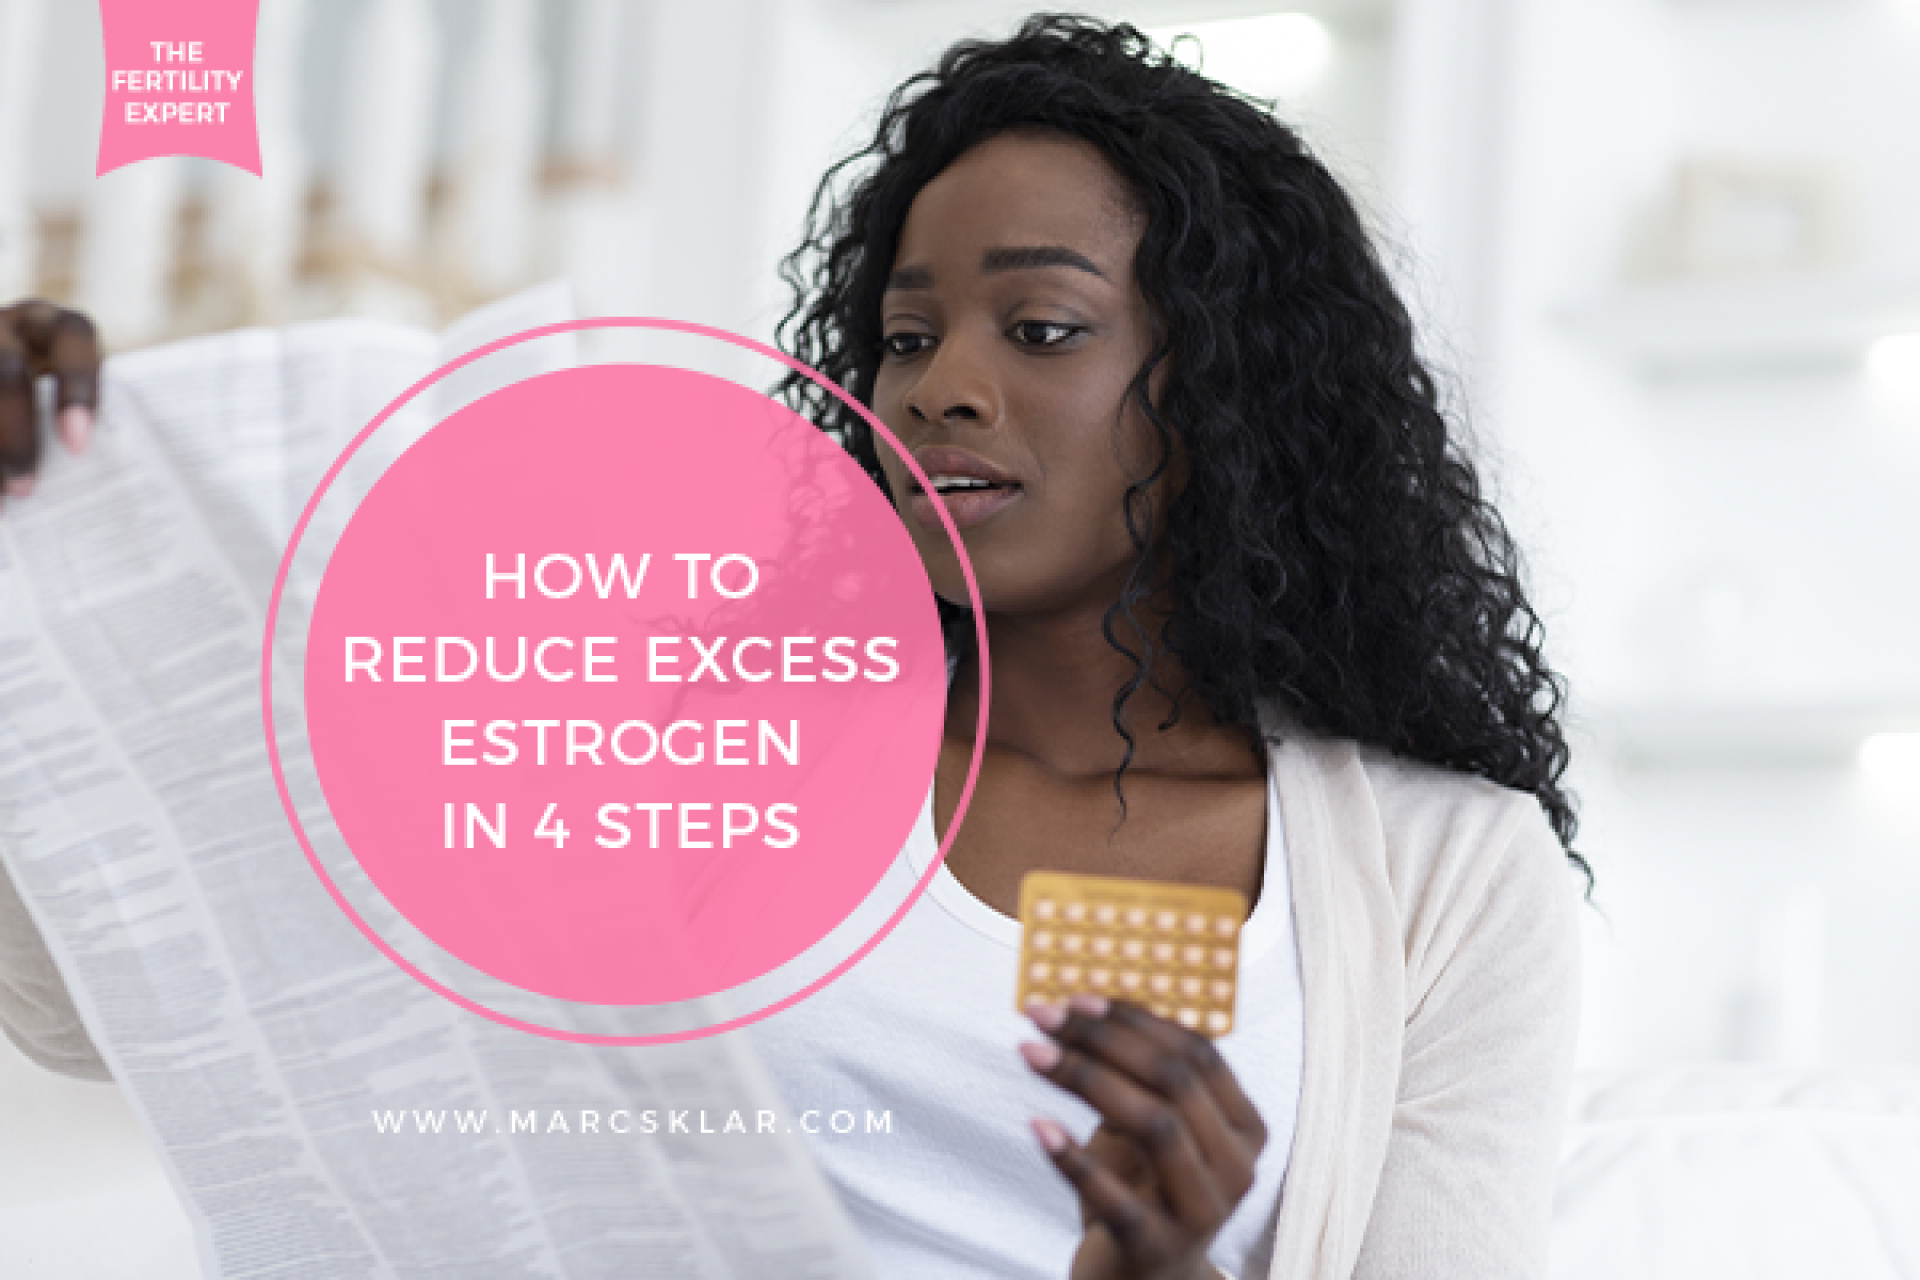 How to reduce excess estrogen in 4 steps